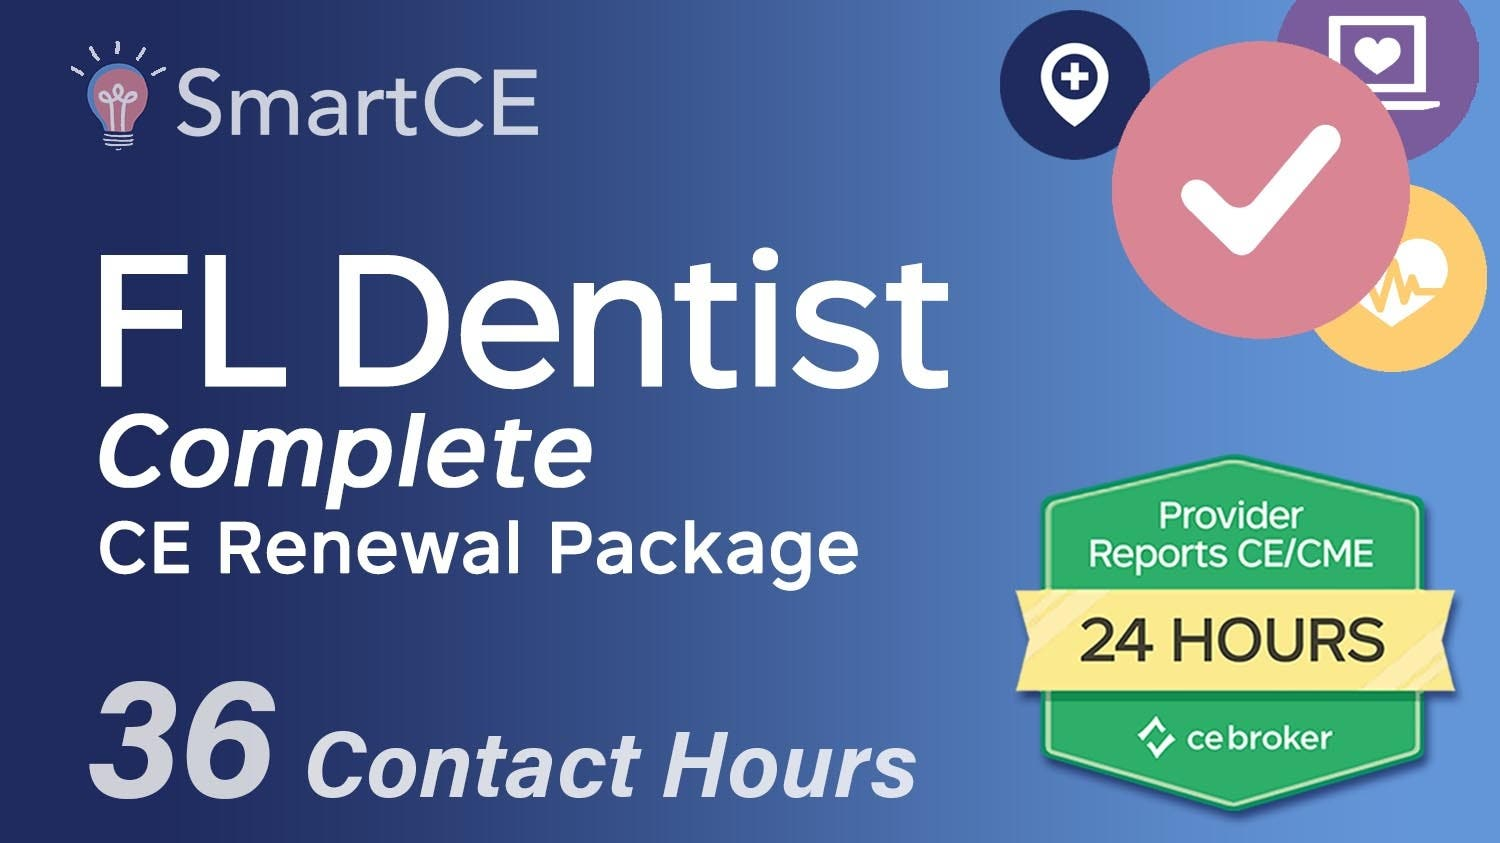 Florida Dentist Complete CE Package - 36 Contact Hours /20-685811